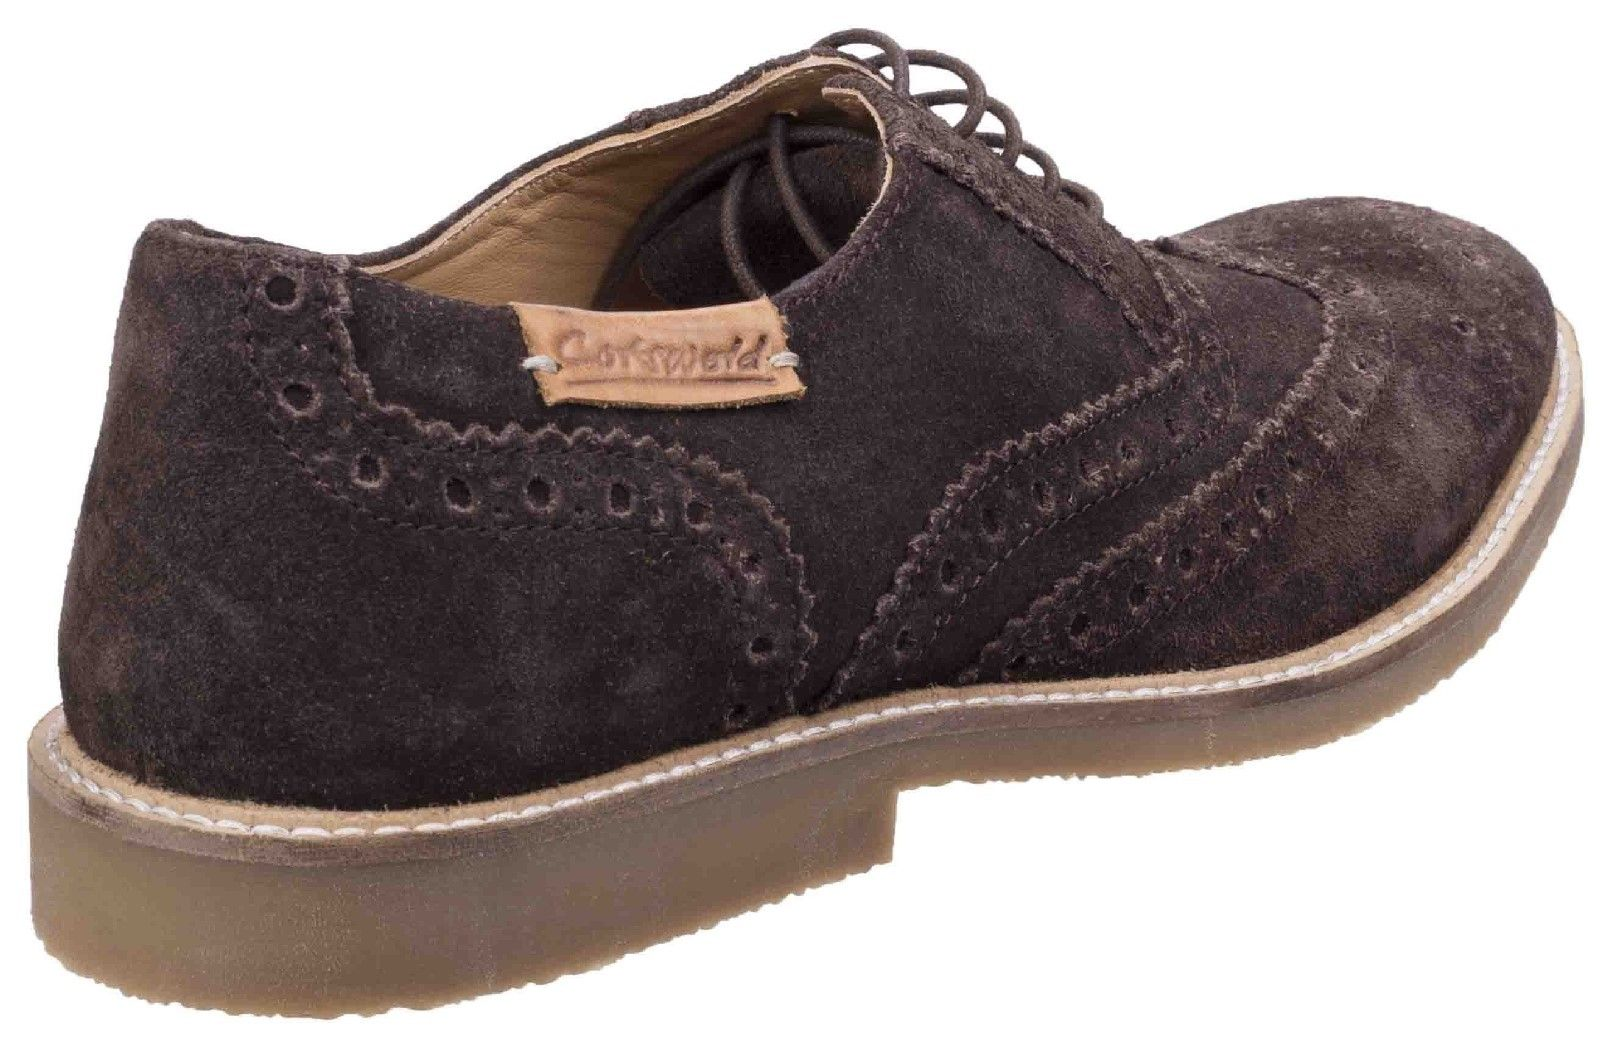 Chatsworth Suede Wingtip Shoes